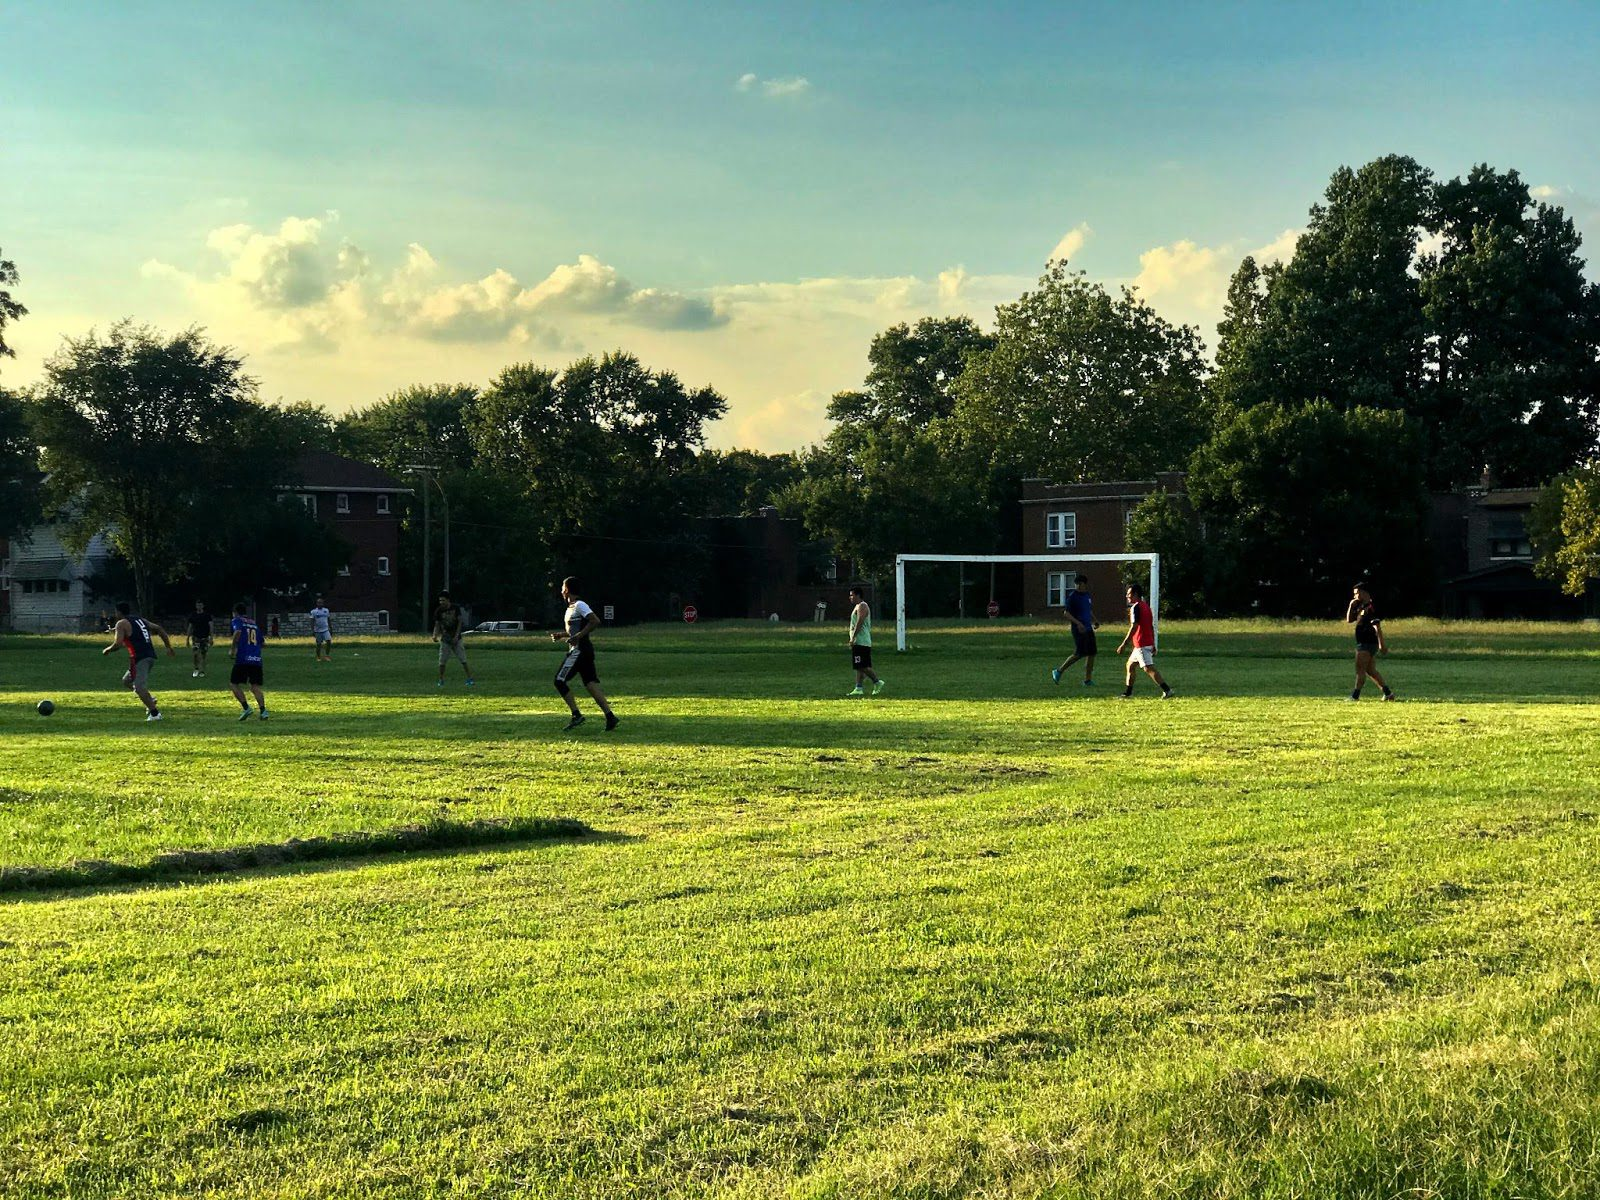 Soccer players at Marquette Park in Dutchtown, St. Louis, MO.